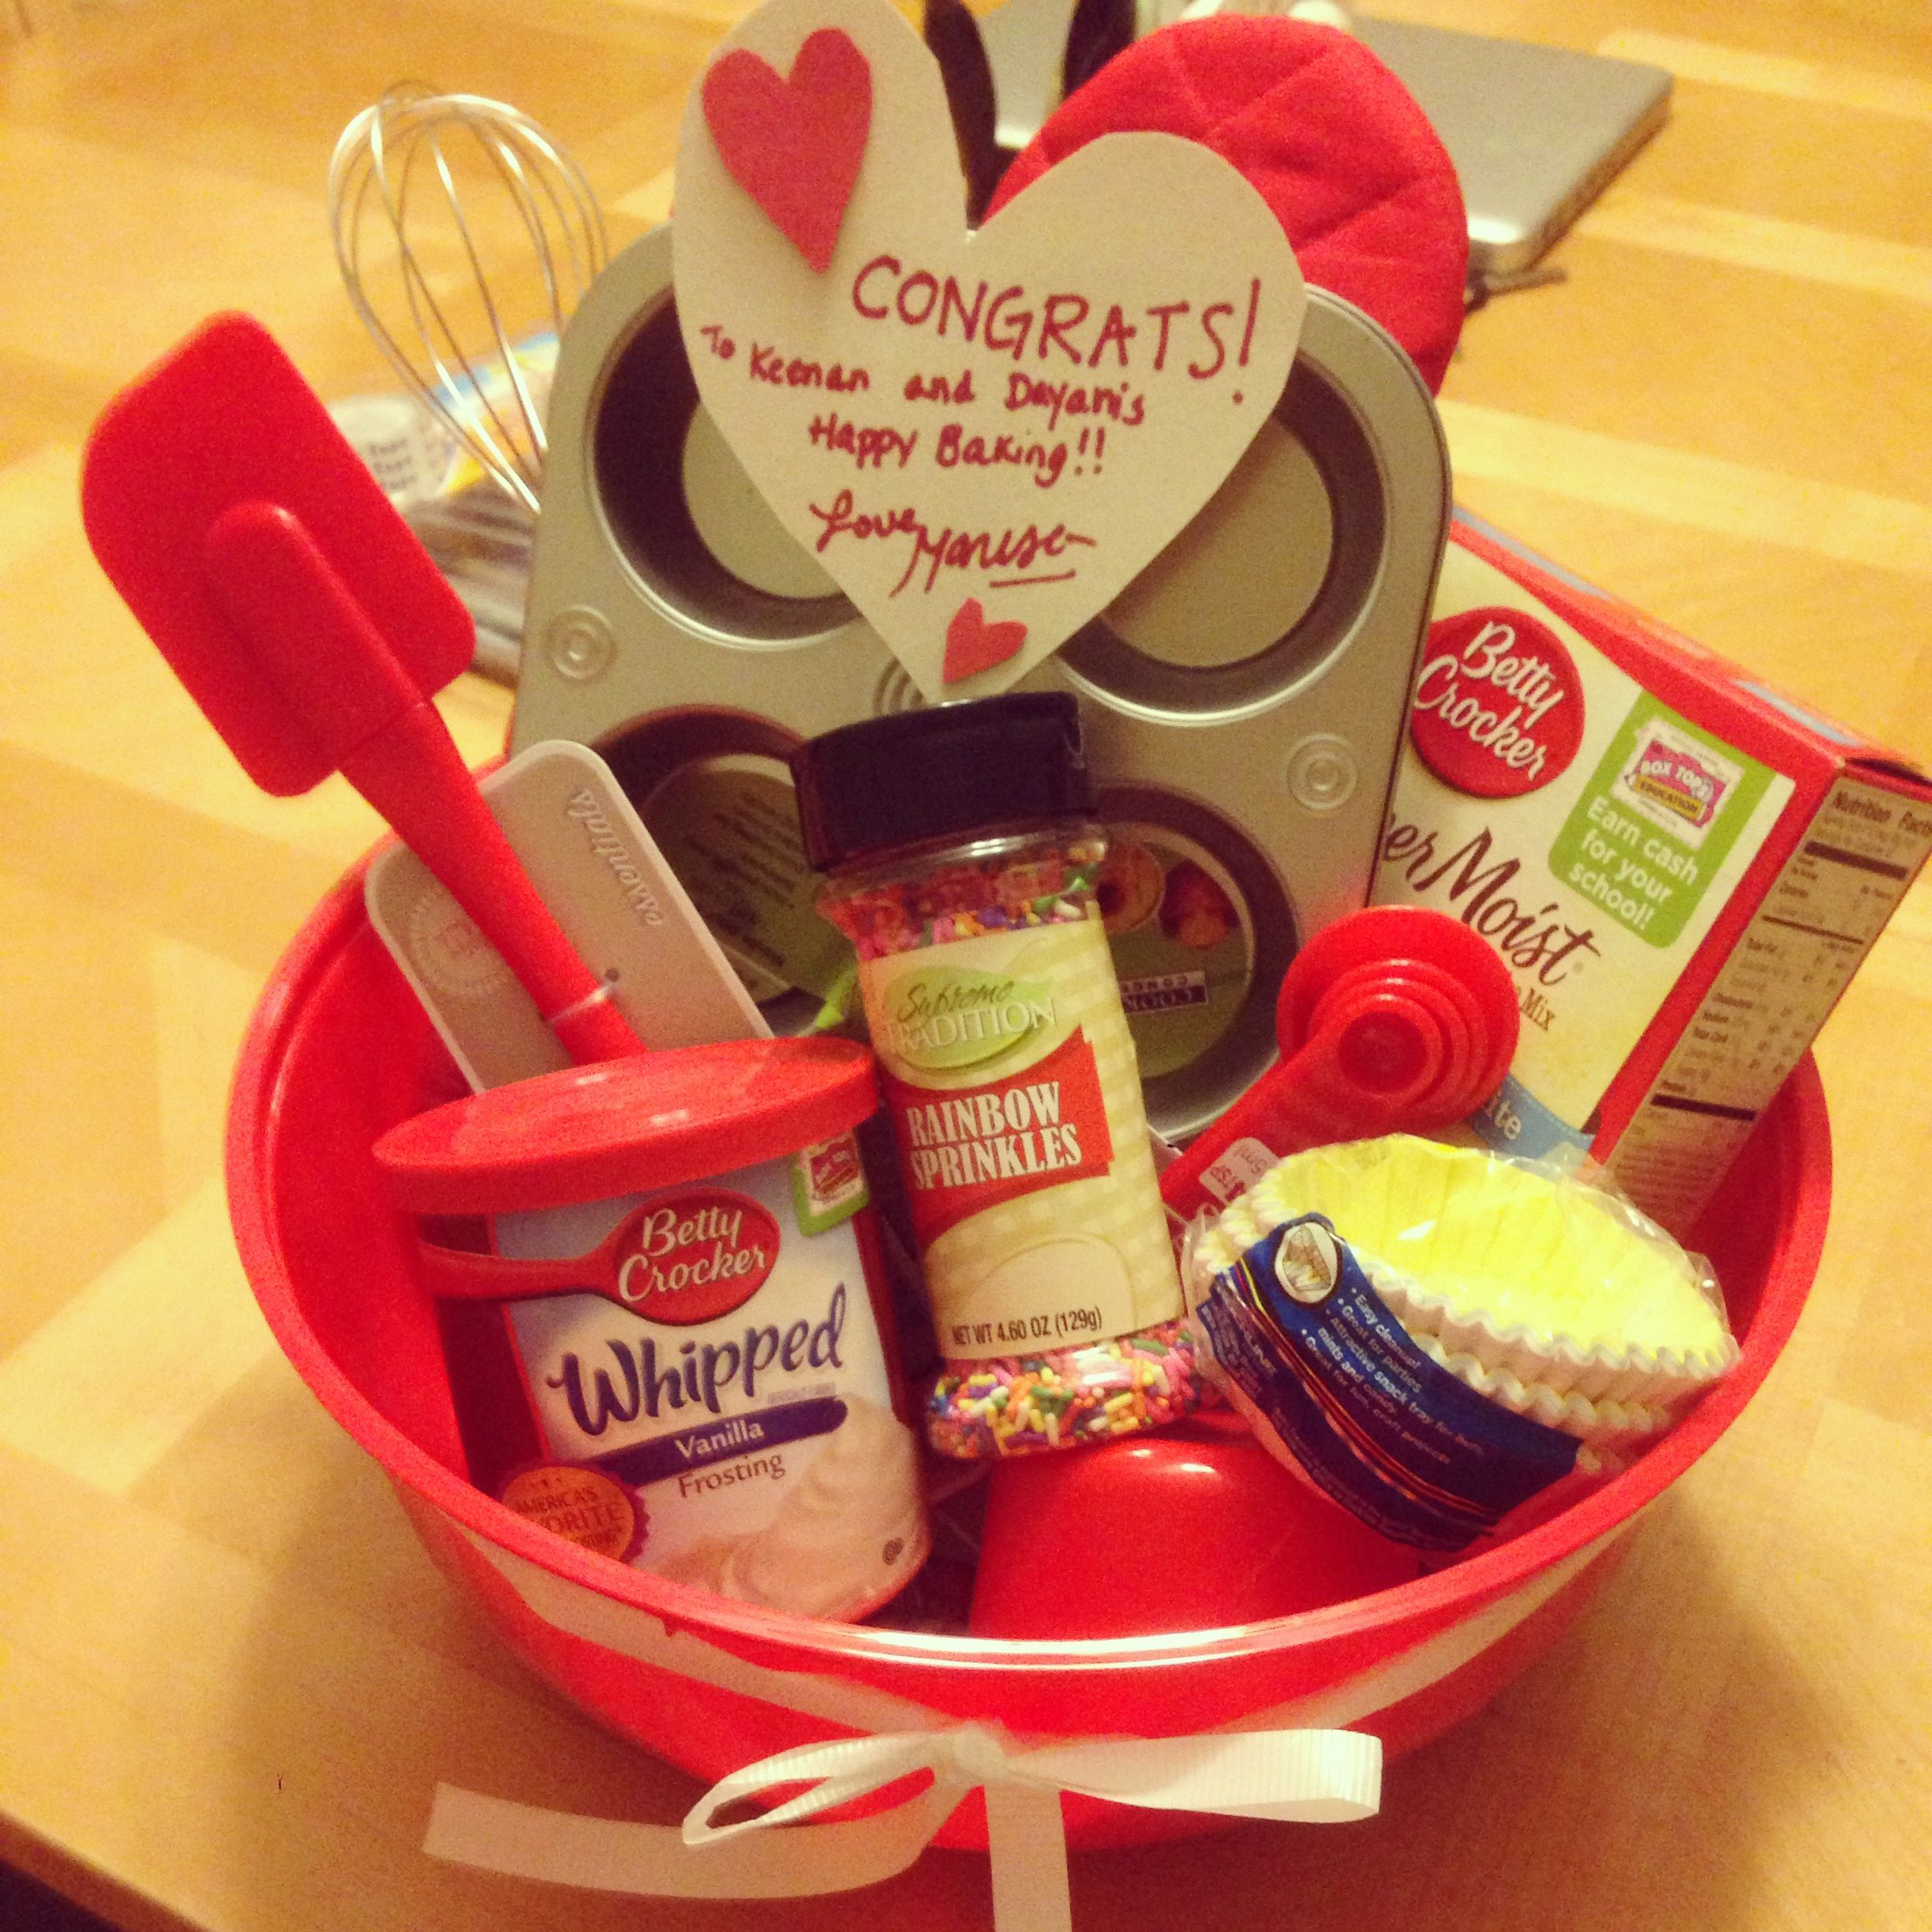 diy dollar store housewarming gift basket from someone who bakes or